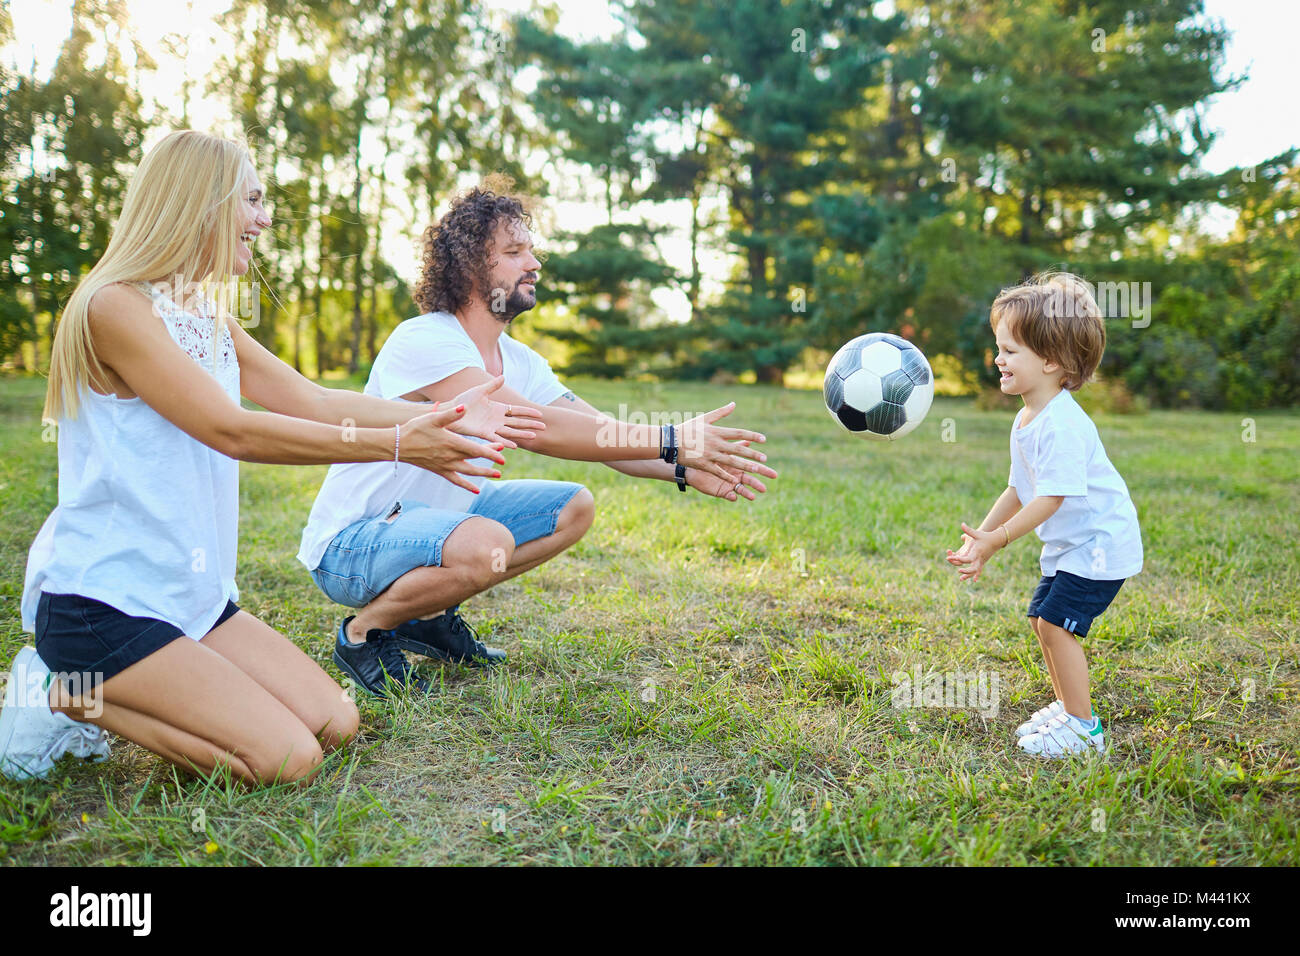 Family playing with a ball in the park.  Stock Photo